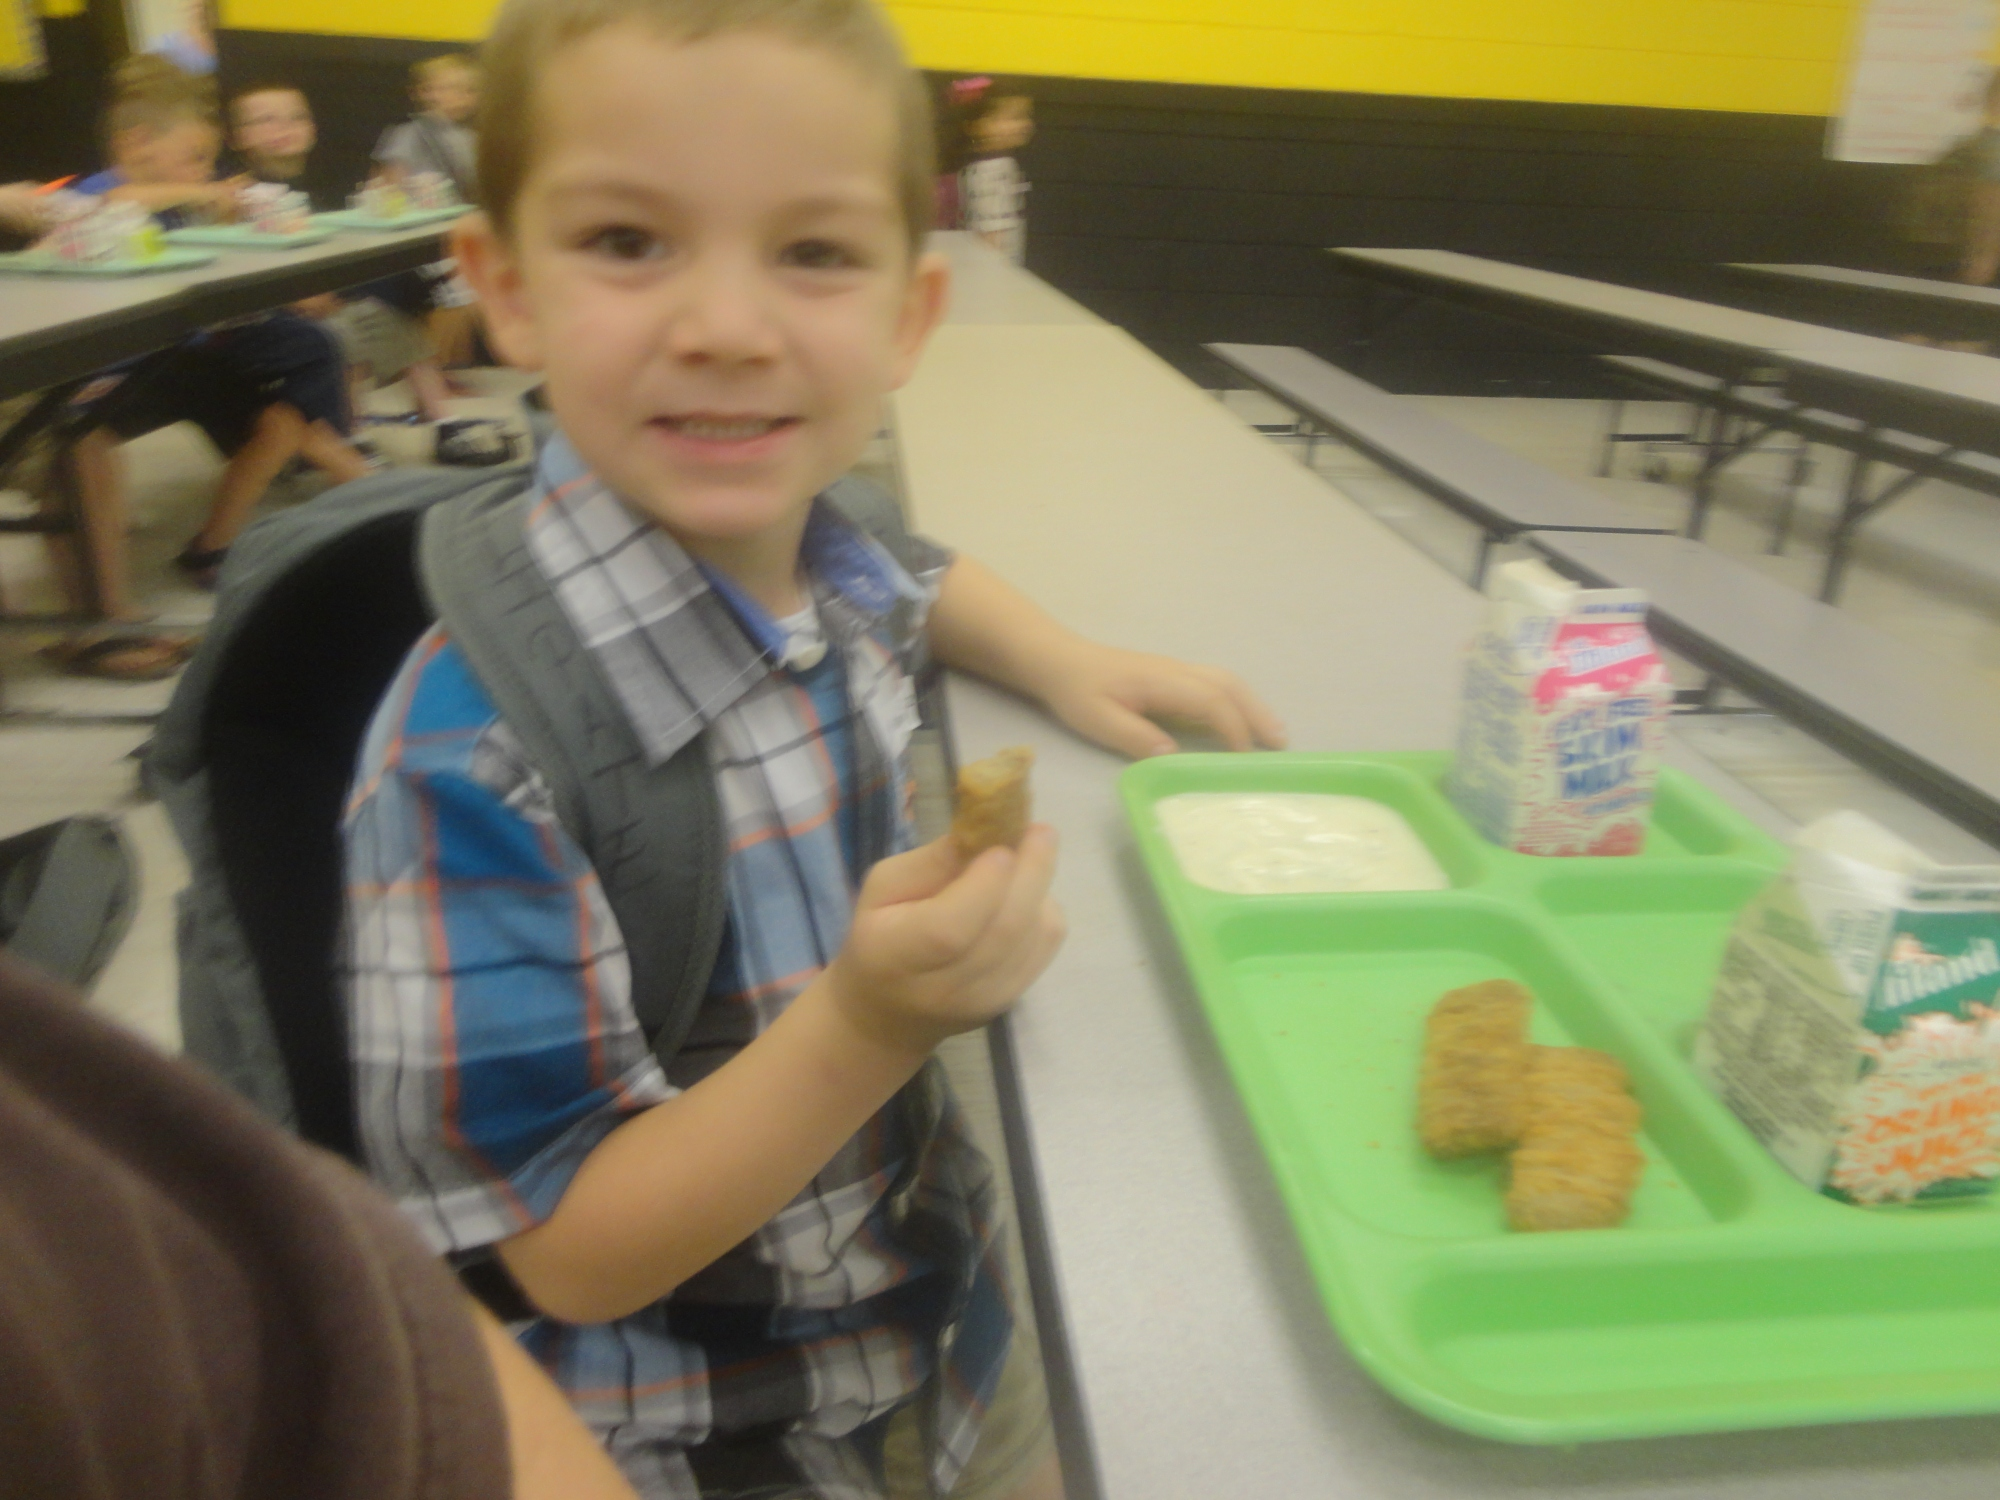 Eating Breakfast At His First Day Of Kindergarten